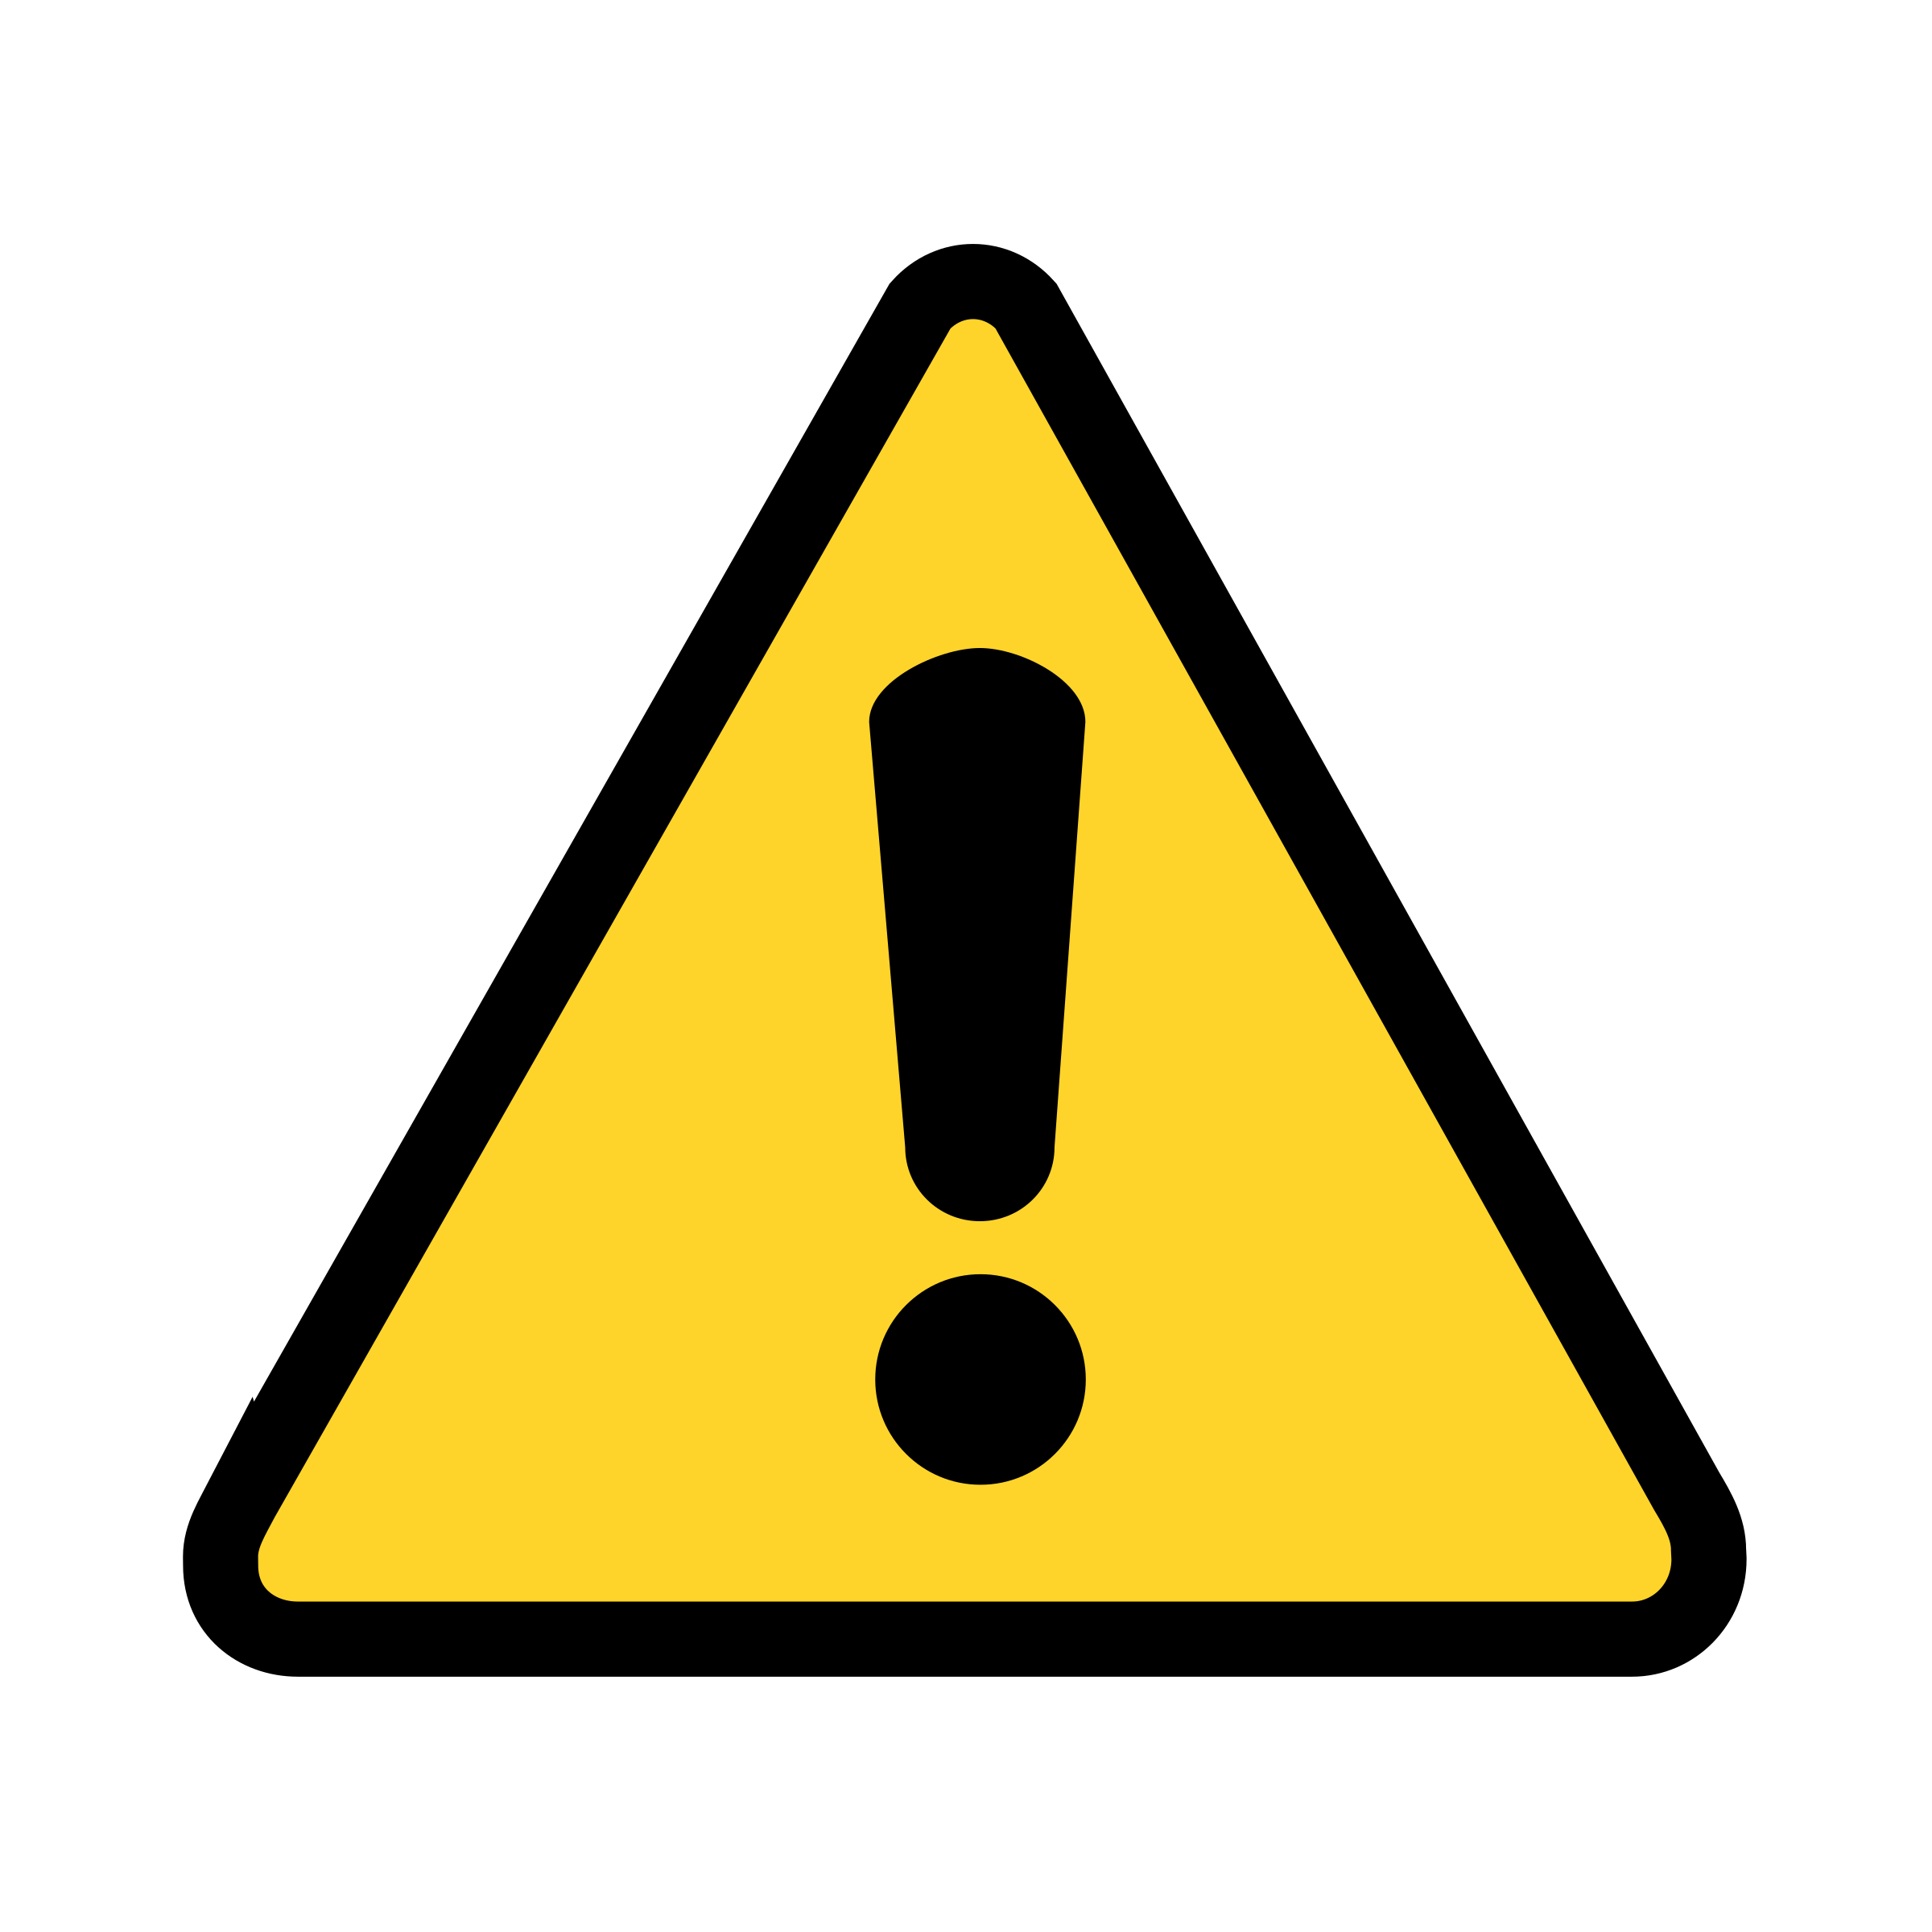 Safety warning clipart png free download Safety Sign Clipart | Free download best Safety Sign Clipart ... png free download